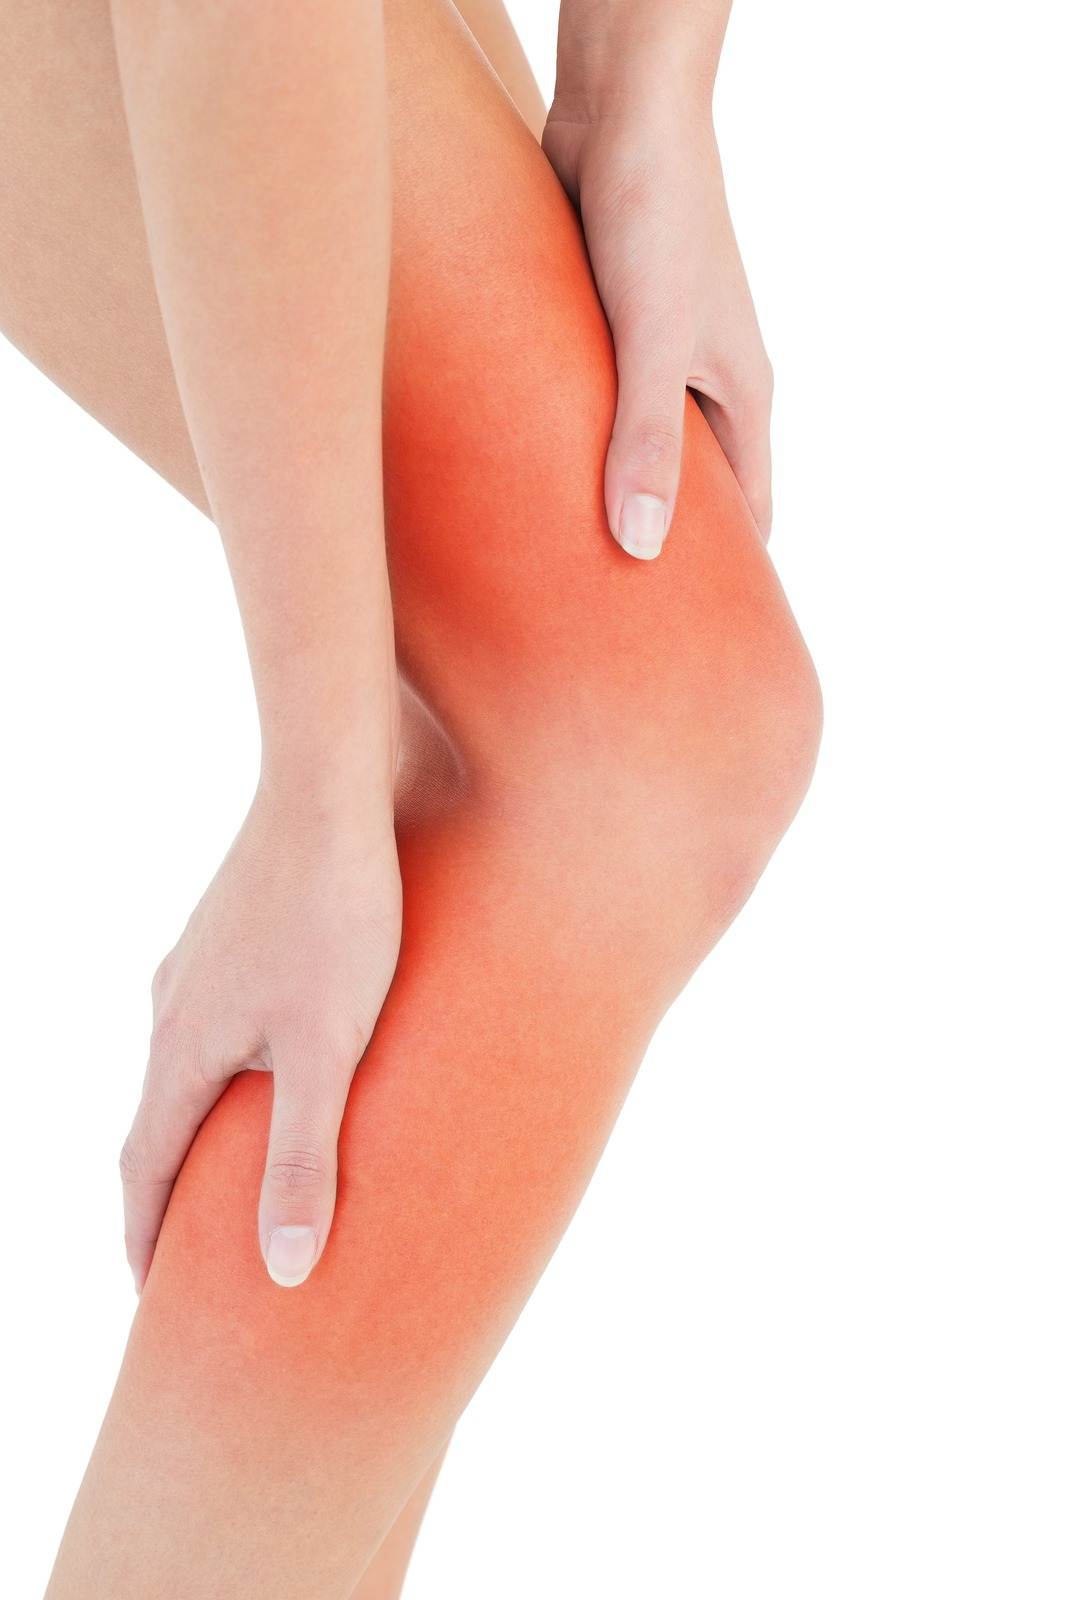 Are Conservative Vein Treatments Right For You?